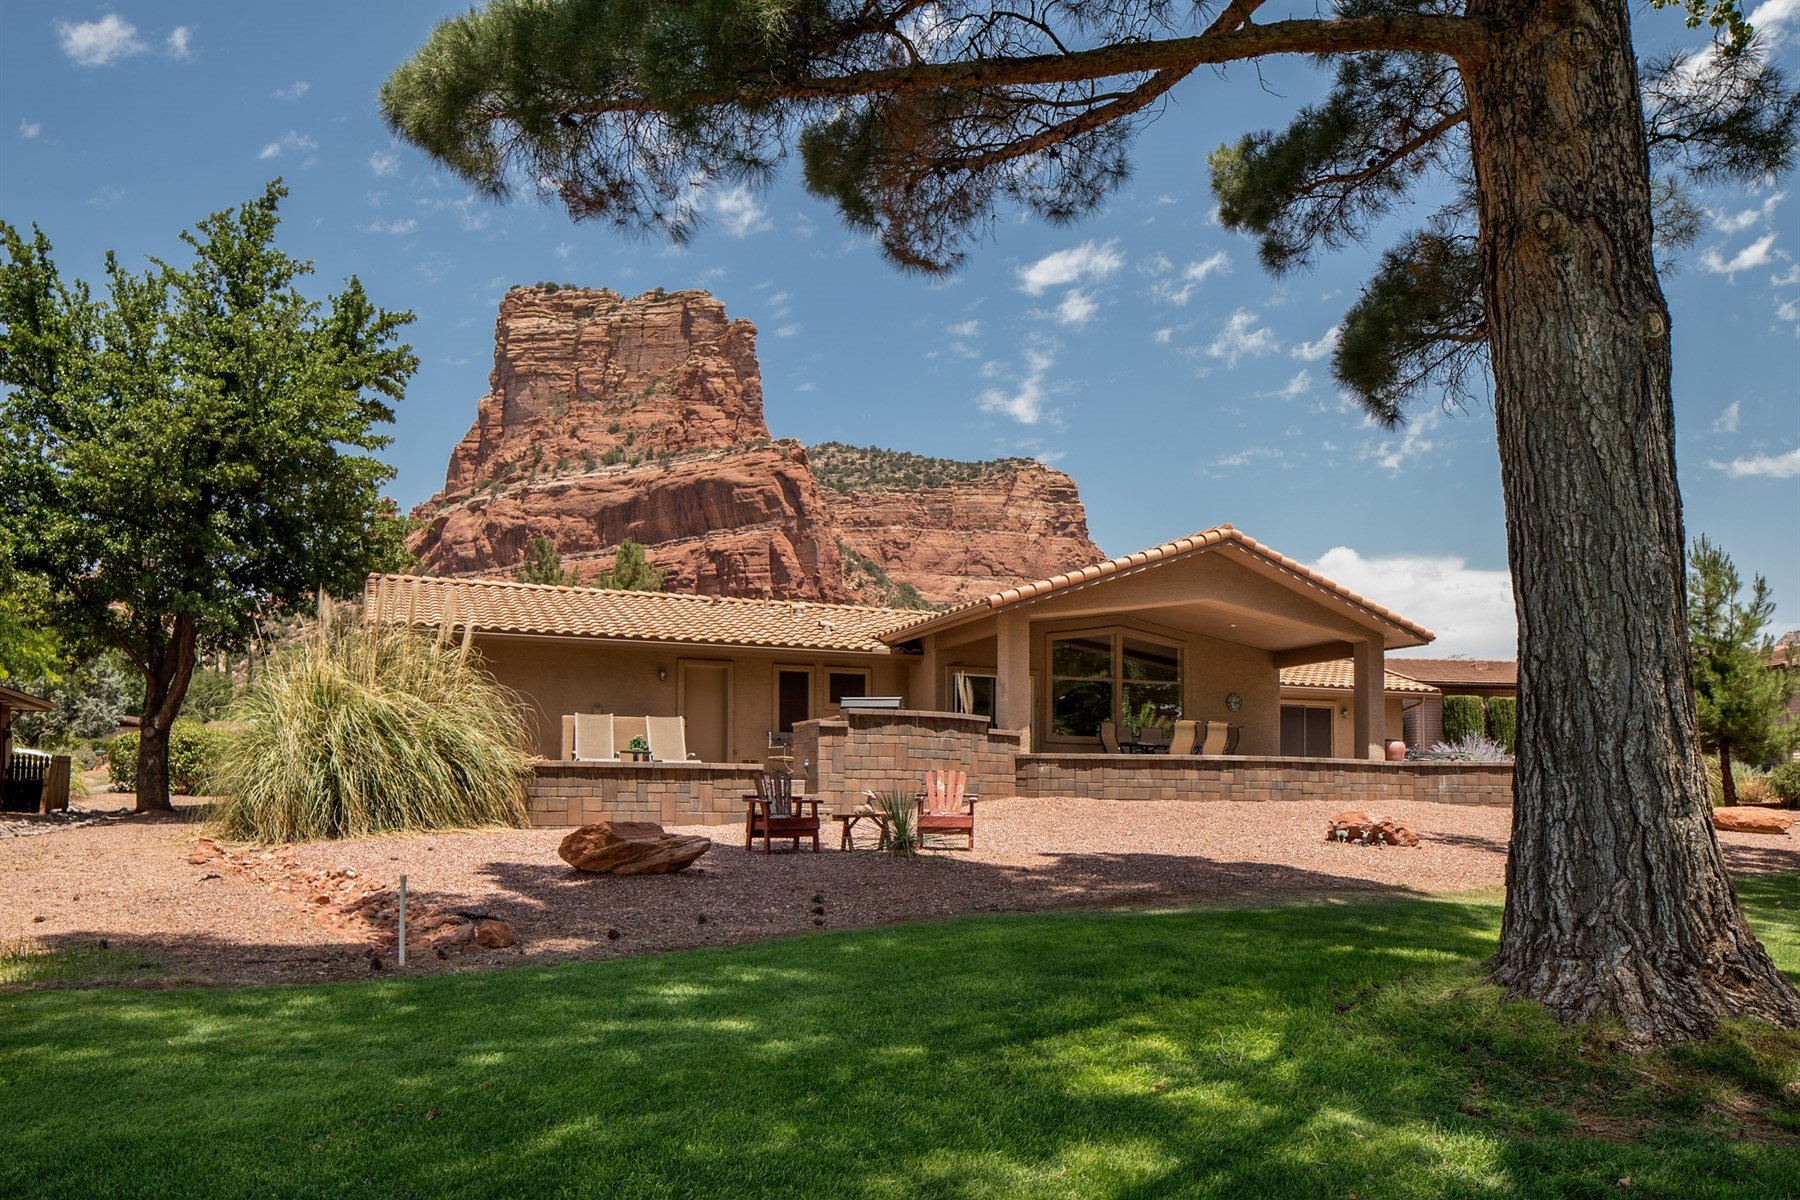 Casa Unifamiliar por un Venta en Remodeled home nestled in the majesty of the Sedona Red Rocks 65 Fairway Oaks Drive Sedona, Arizona, 86351 Estados Unidos